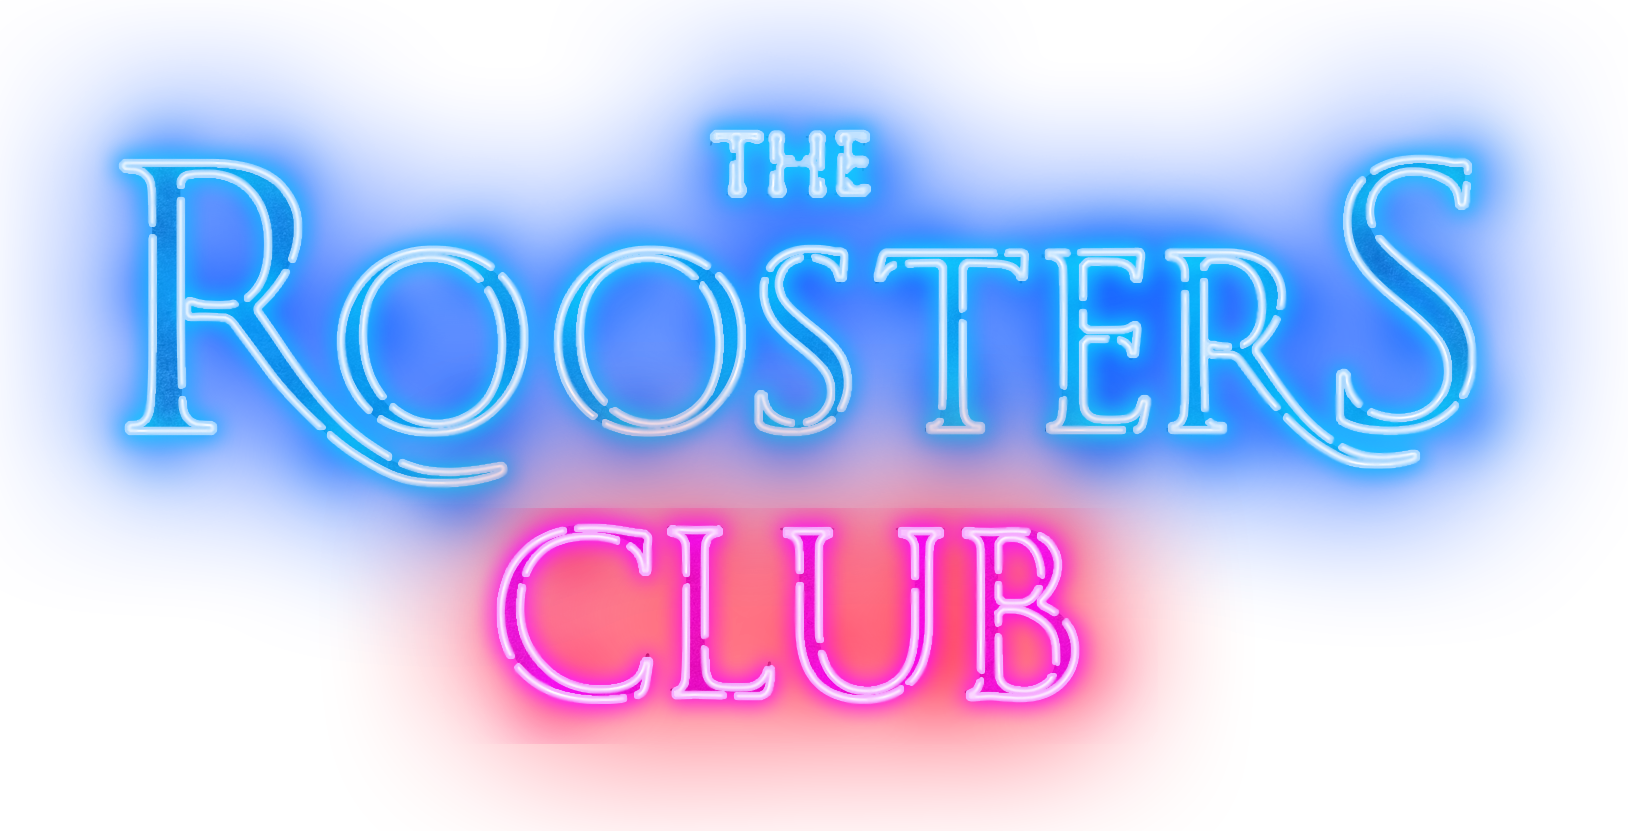 The Roosters Club